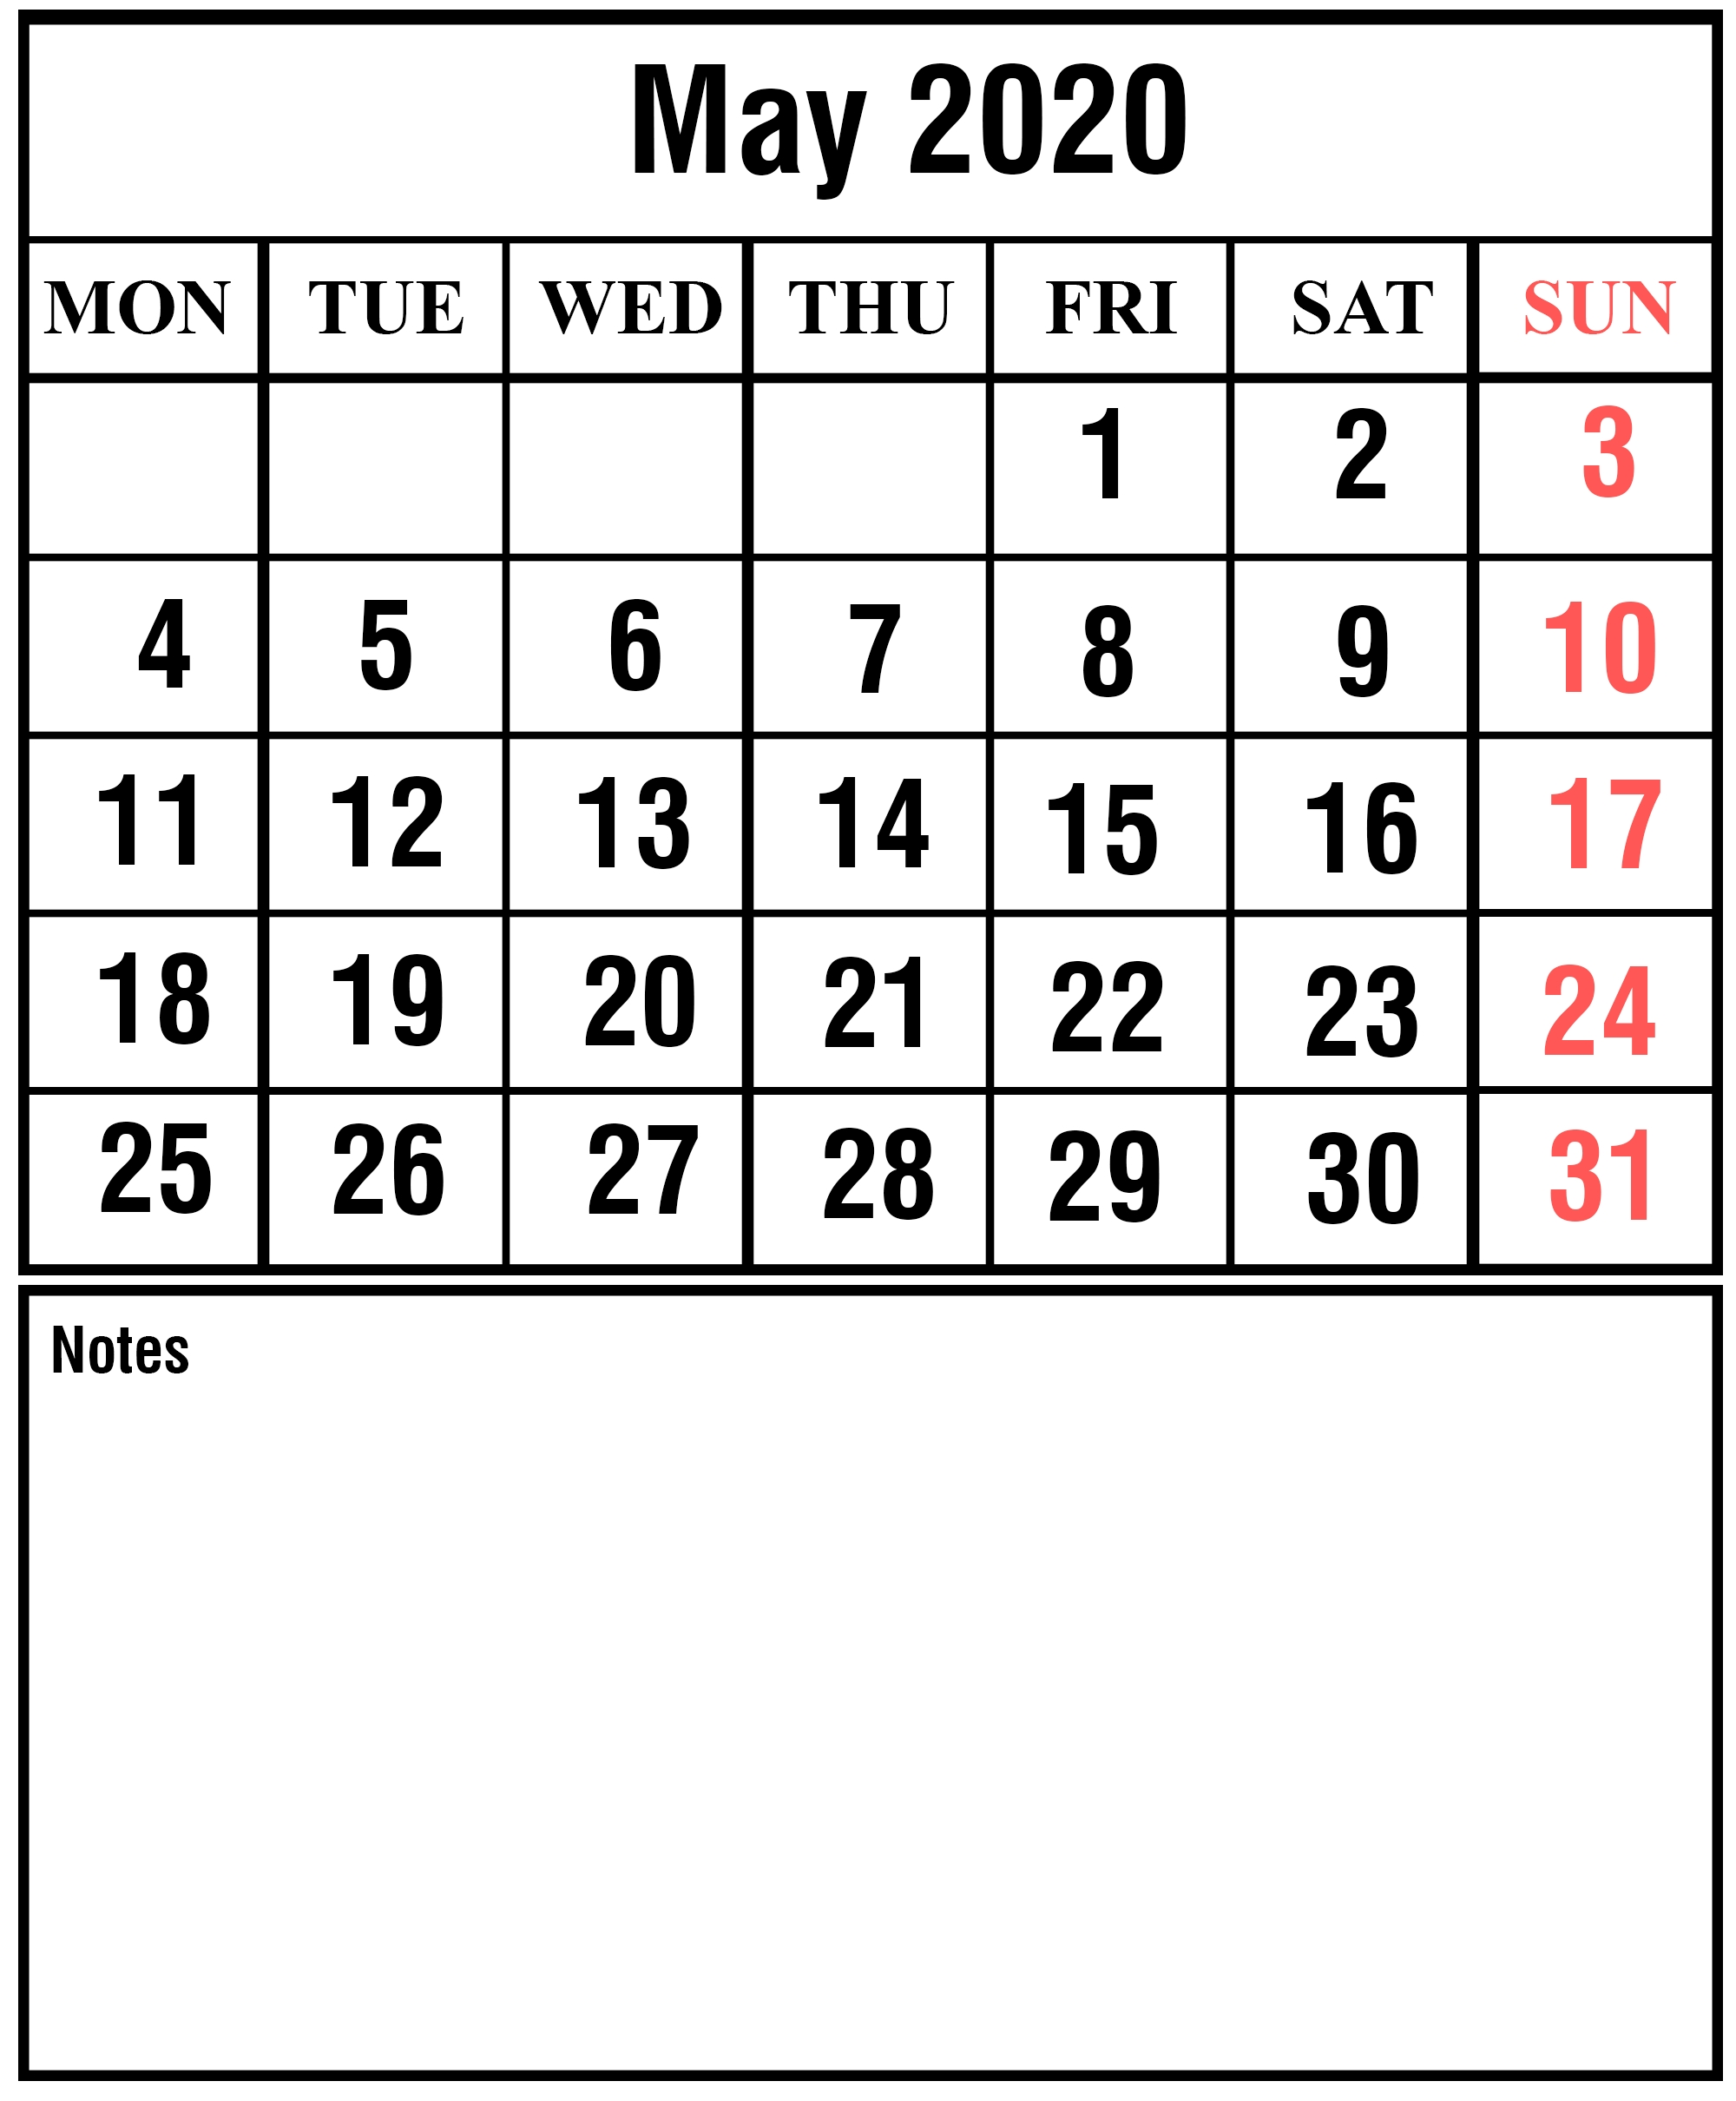 Free May 2020 Printable Calendar Template With Holidays [Pdf  Firefighter Calendar 2020 Printable